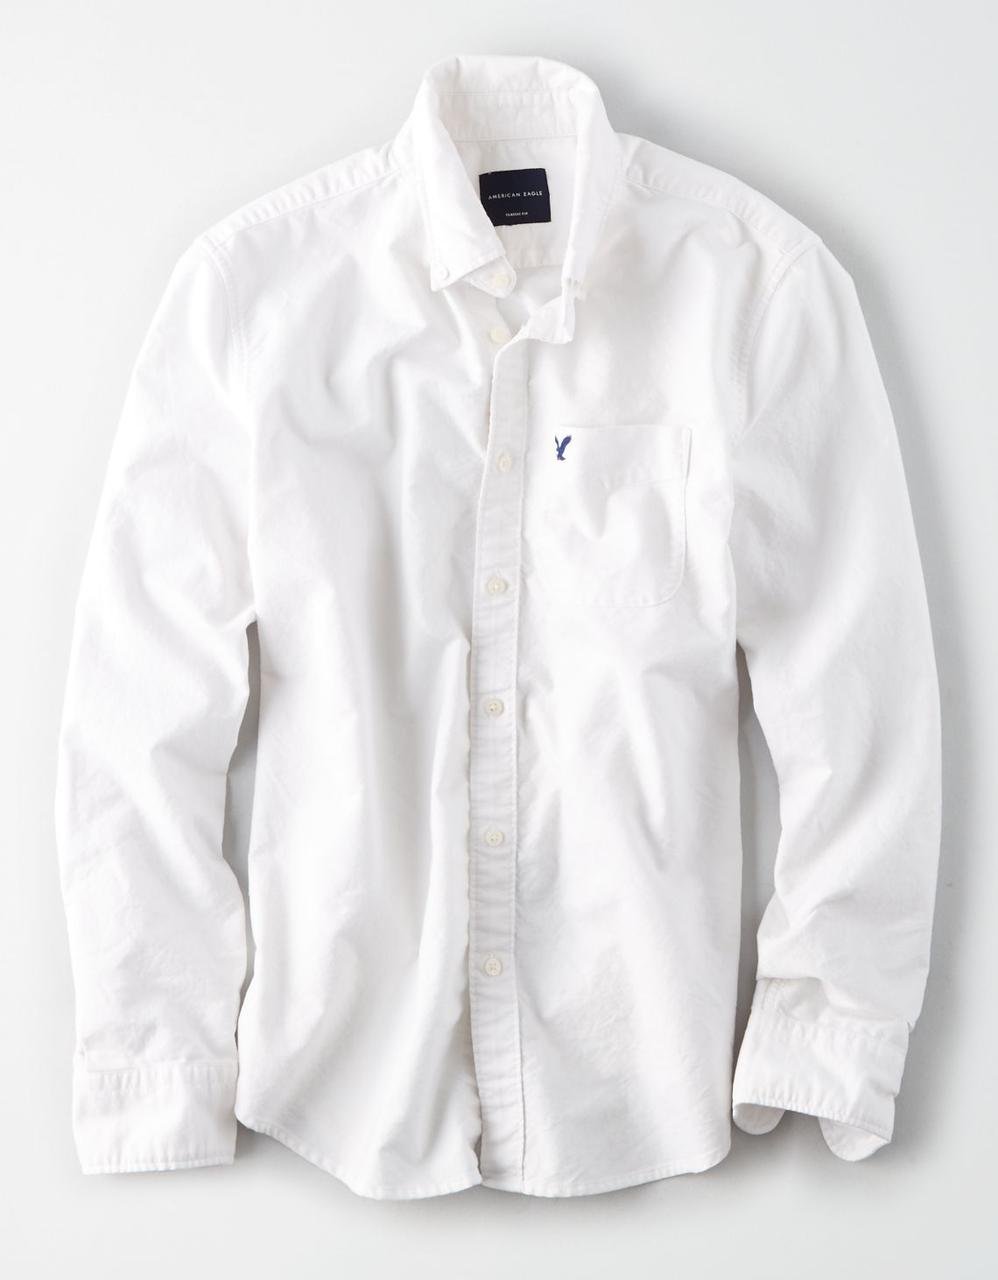 43ade2013427 American Eagle Shirts, AE OXFORD BUTTON-DOWN SHIRT for Men at Aeo.in